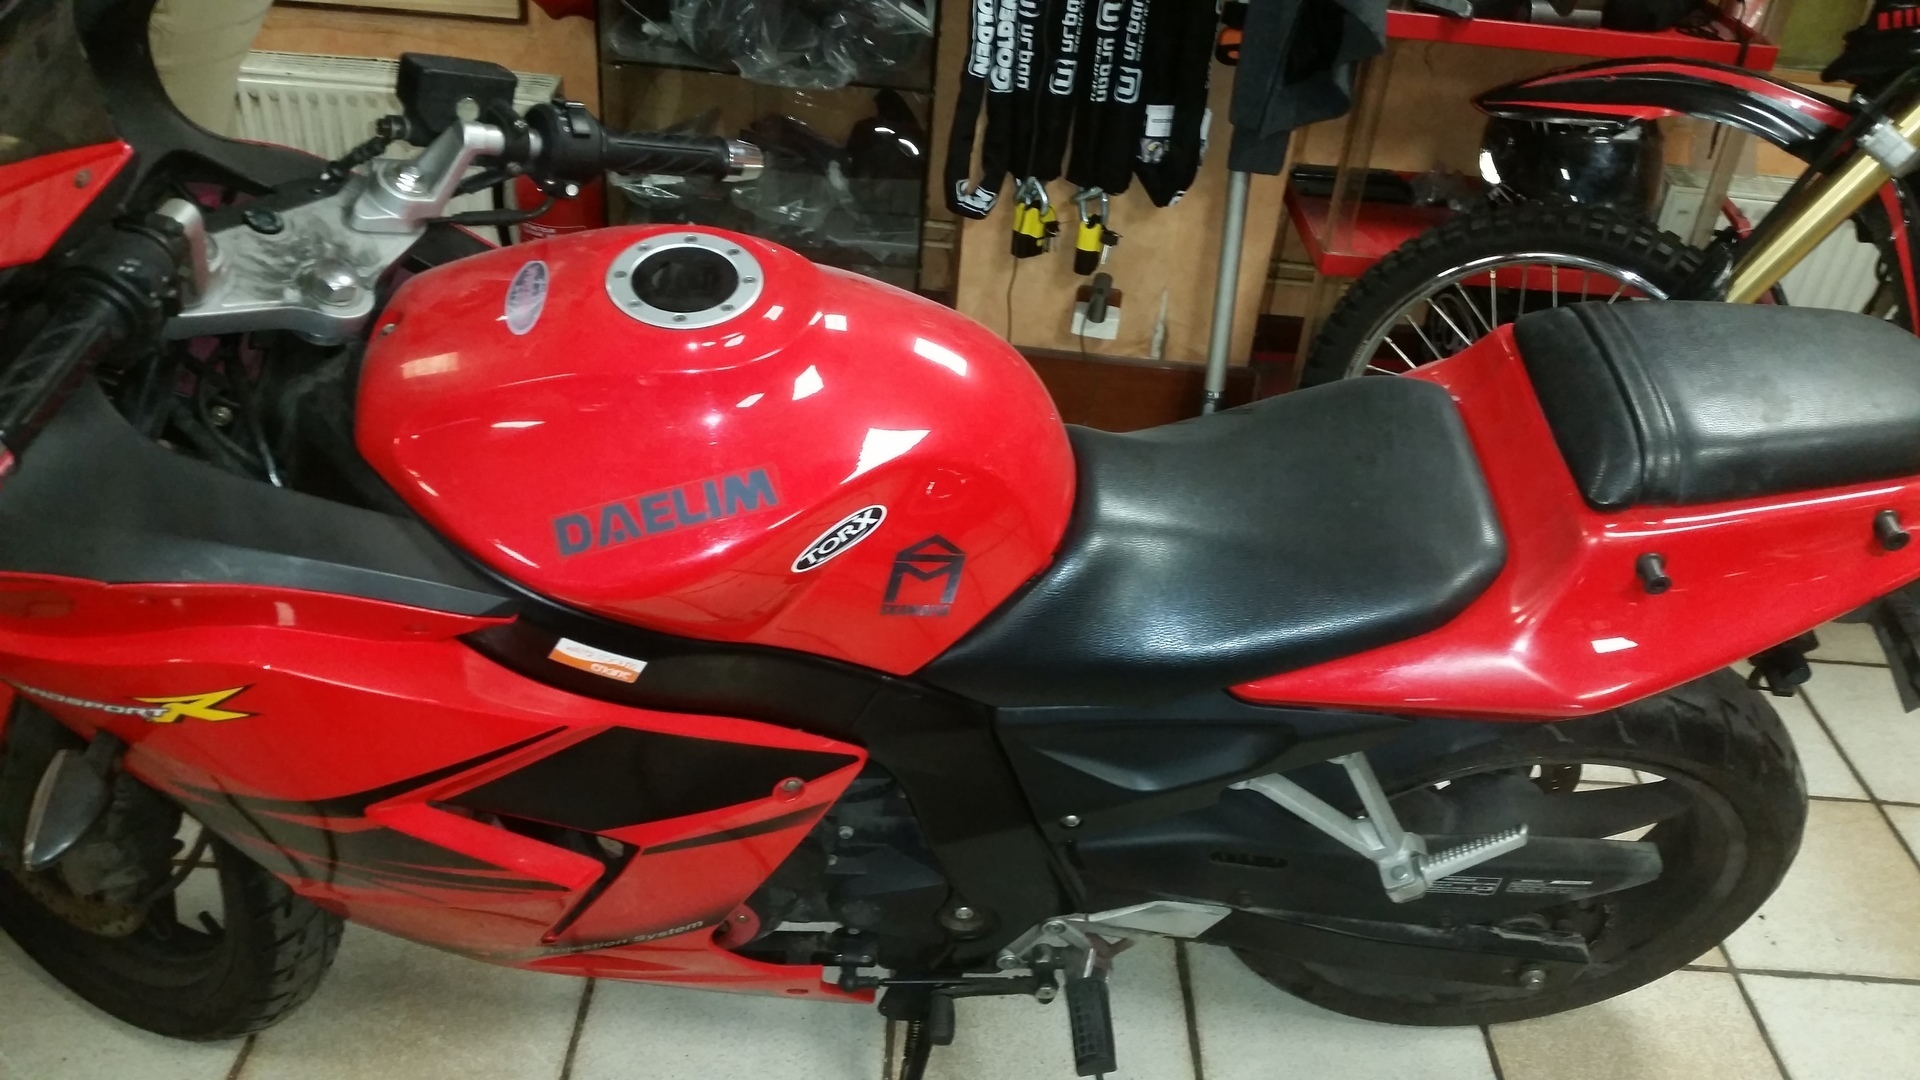 Roadsport 125 daelim